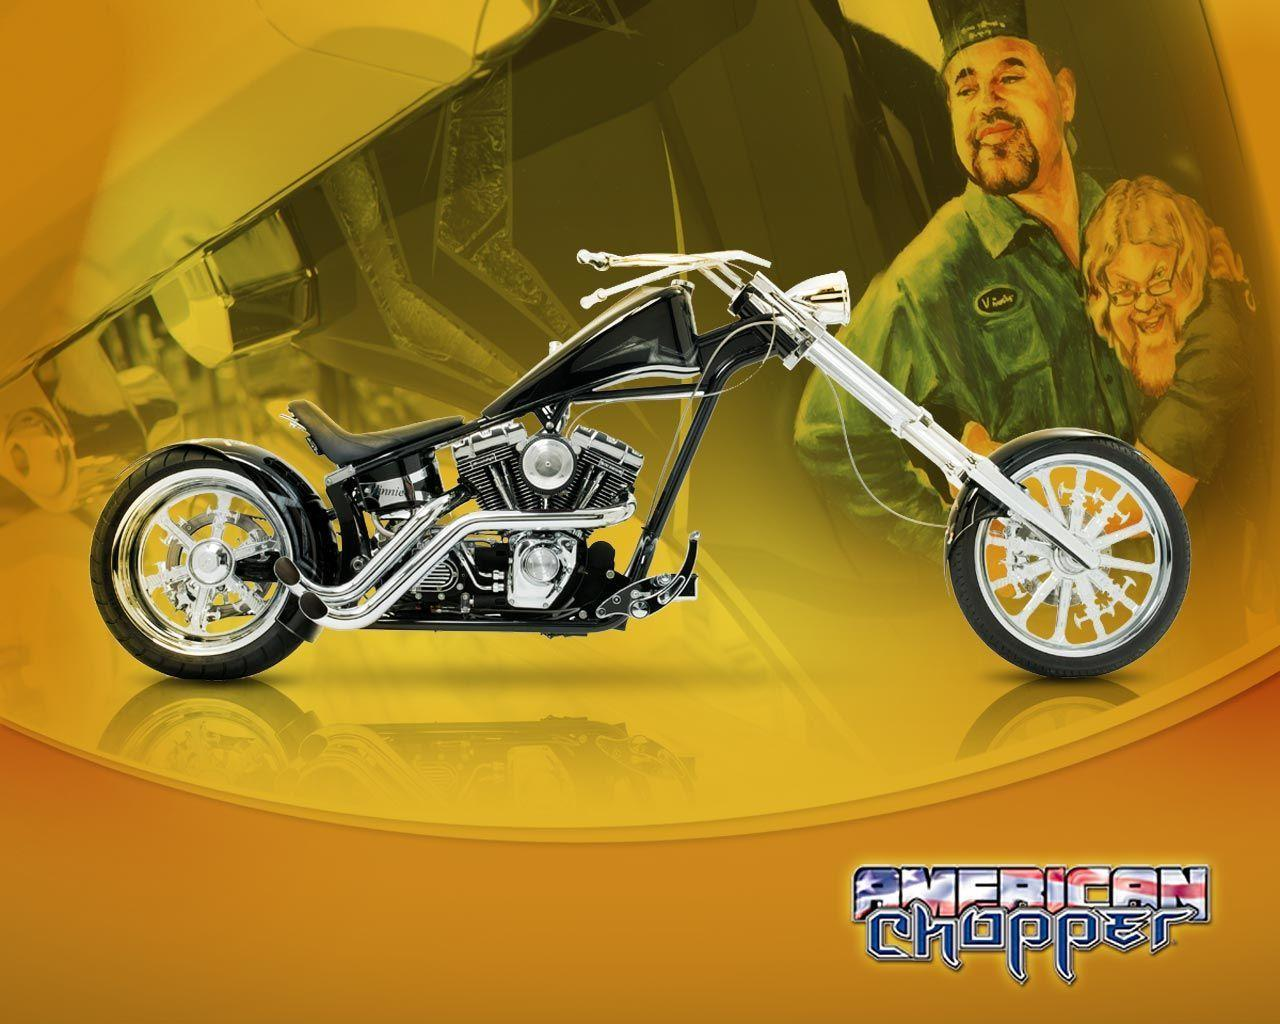 Occ Choppers Wallpapers - Wallpaper Cave